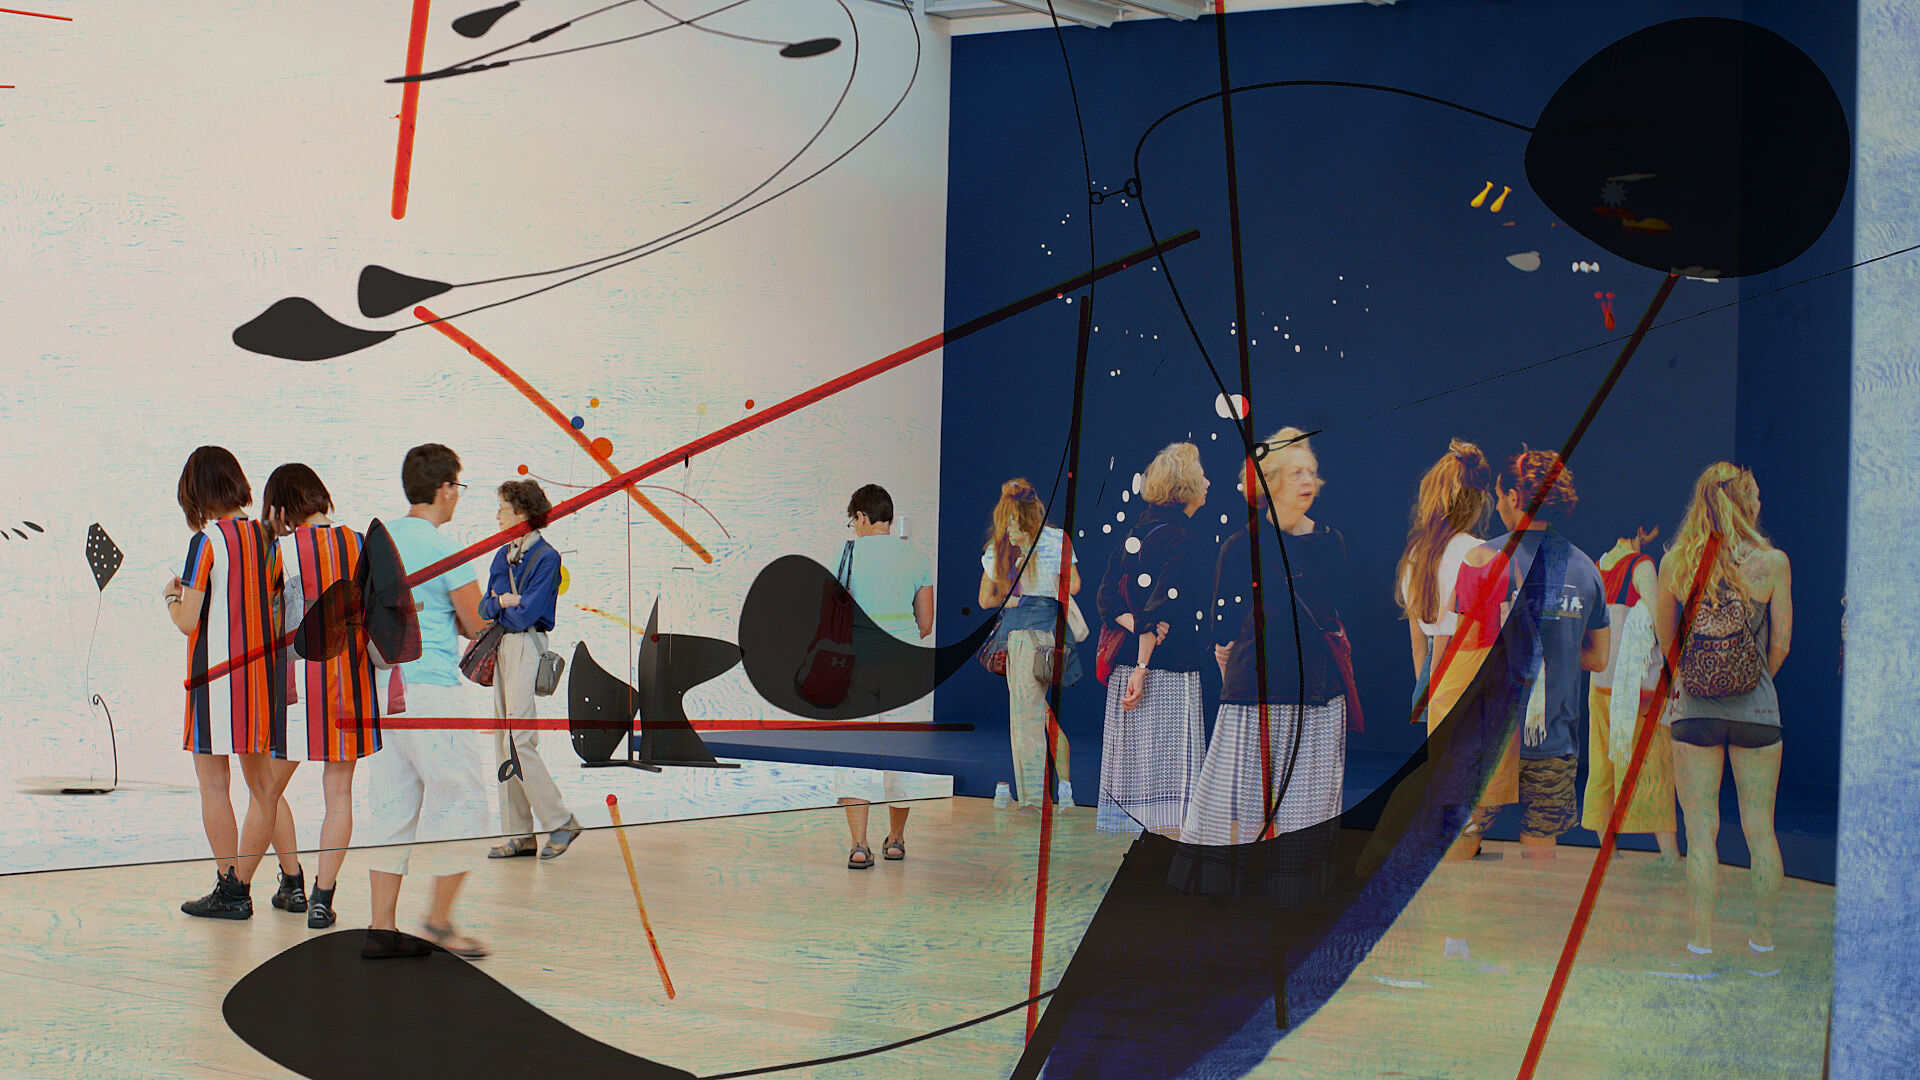 Film still showing people in a gallery with Calder sculptures superimposed.